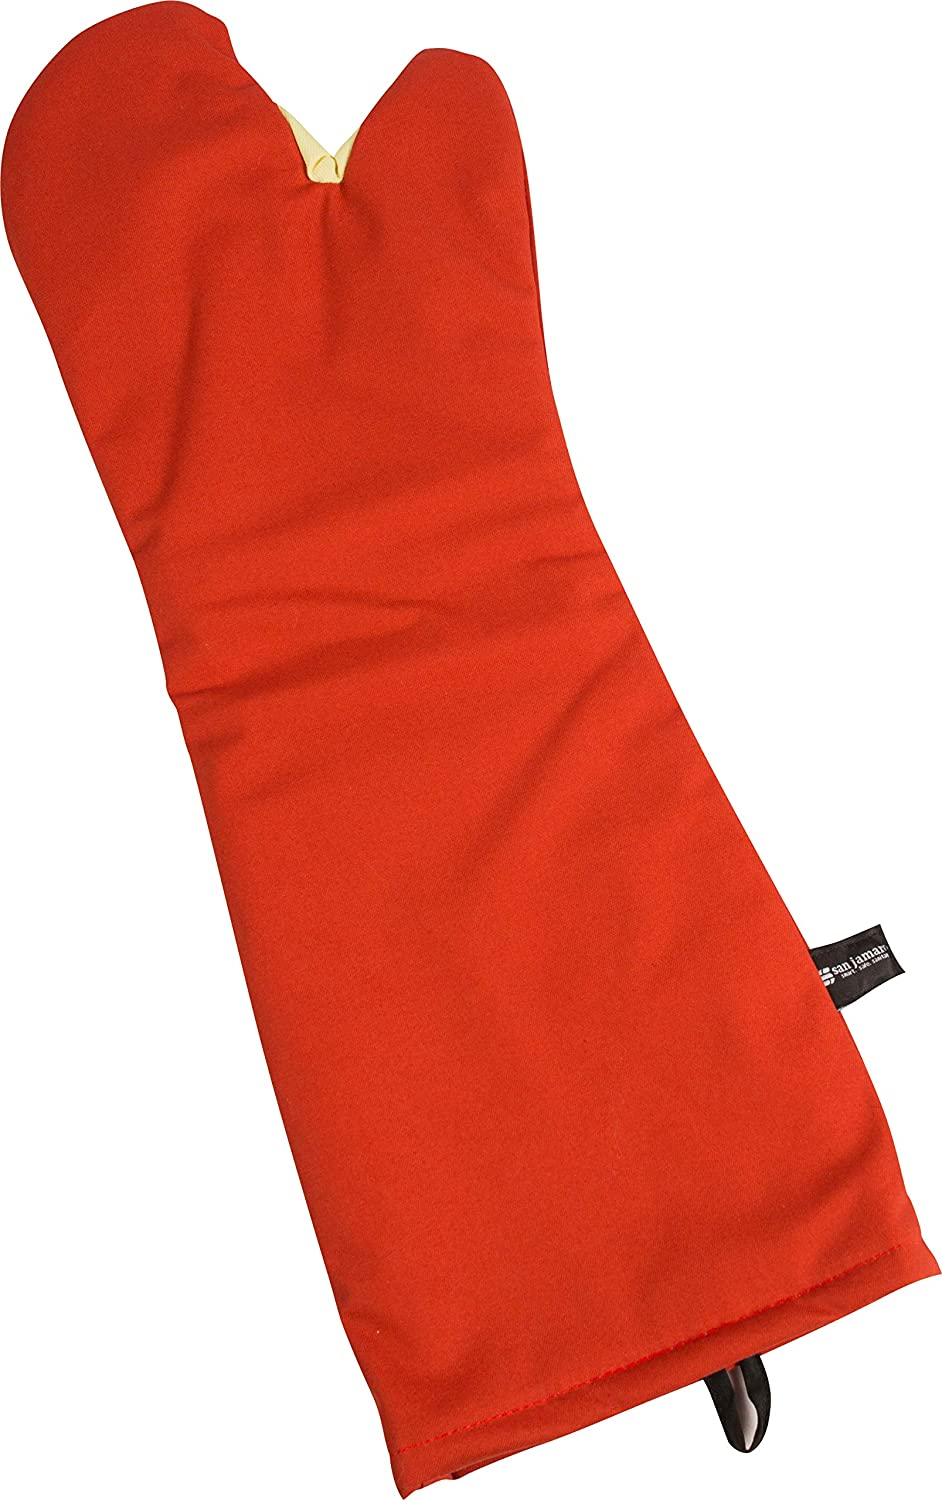 Red 13 Length San Jamar CTC13 Cool Touch Conventional Oven Mitt Heat Protection up to 500/° F 13 Length